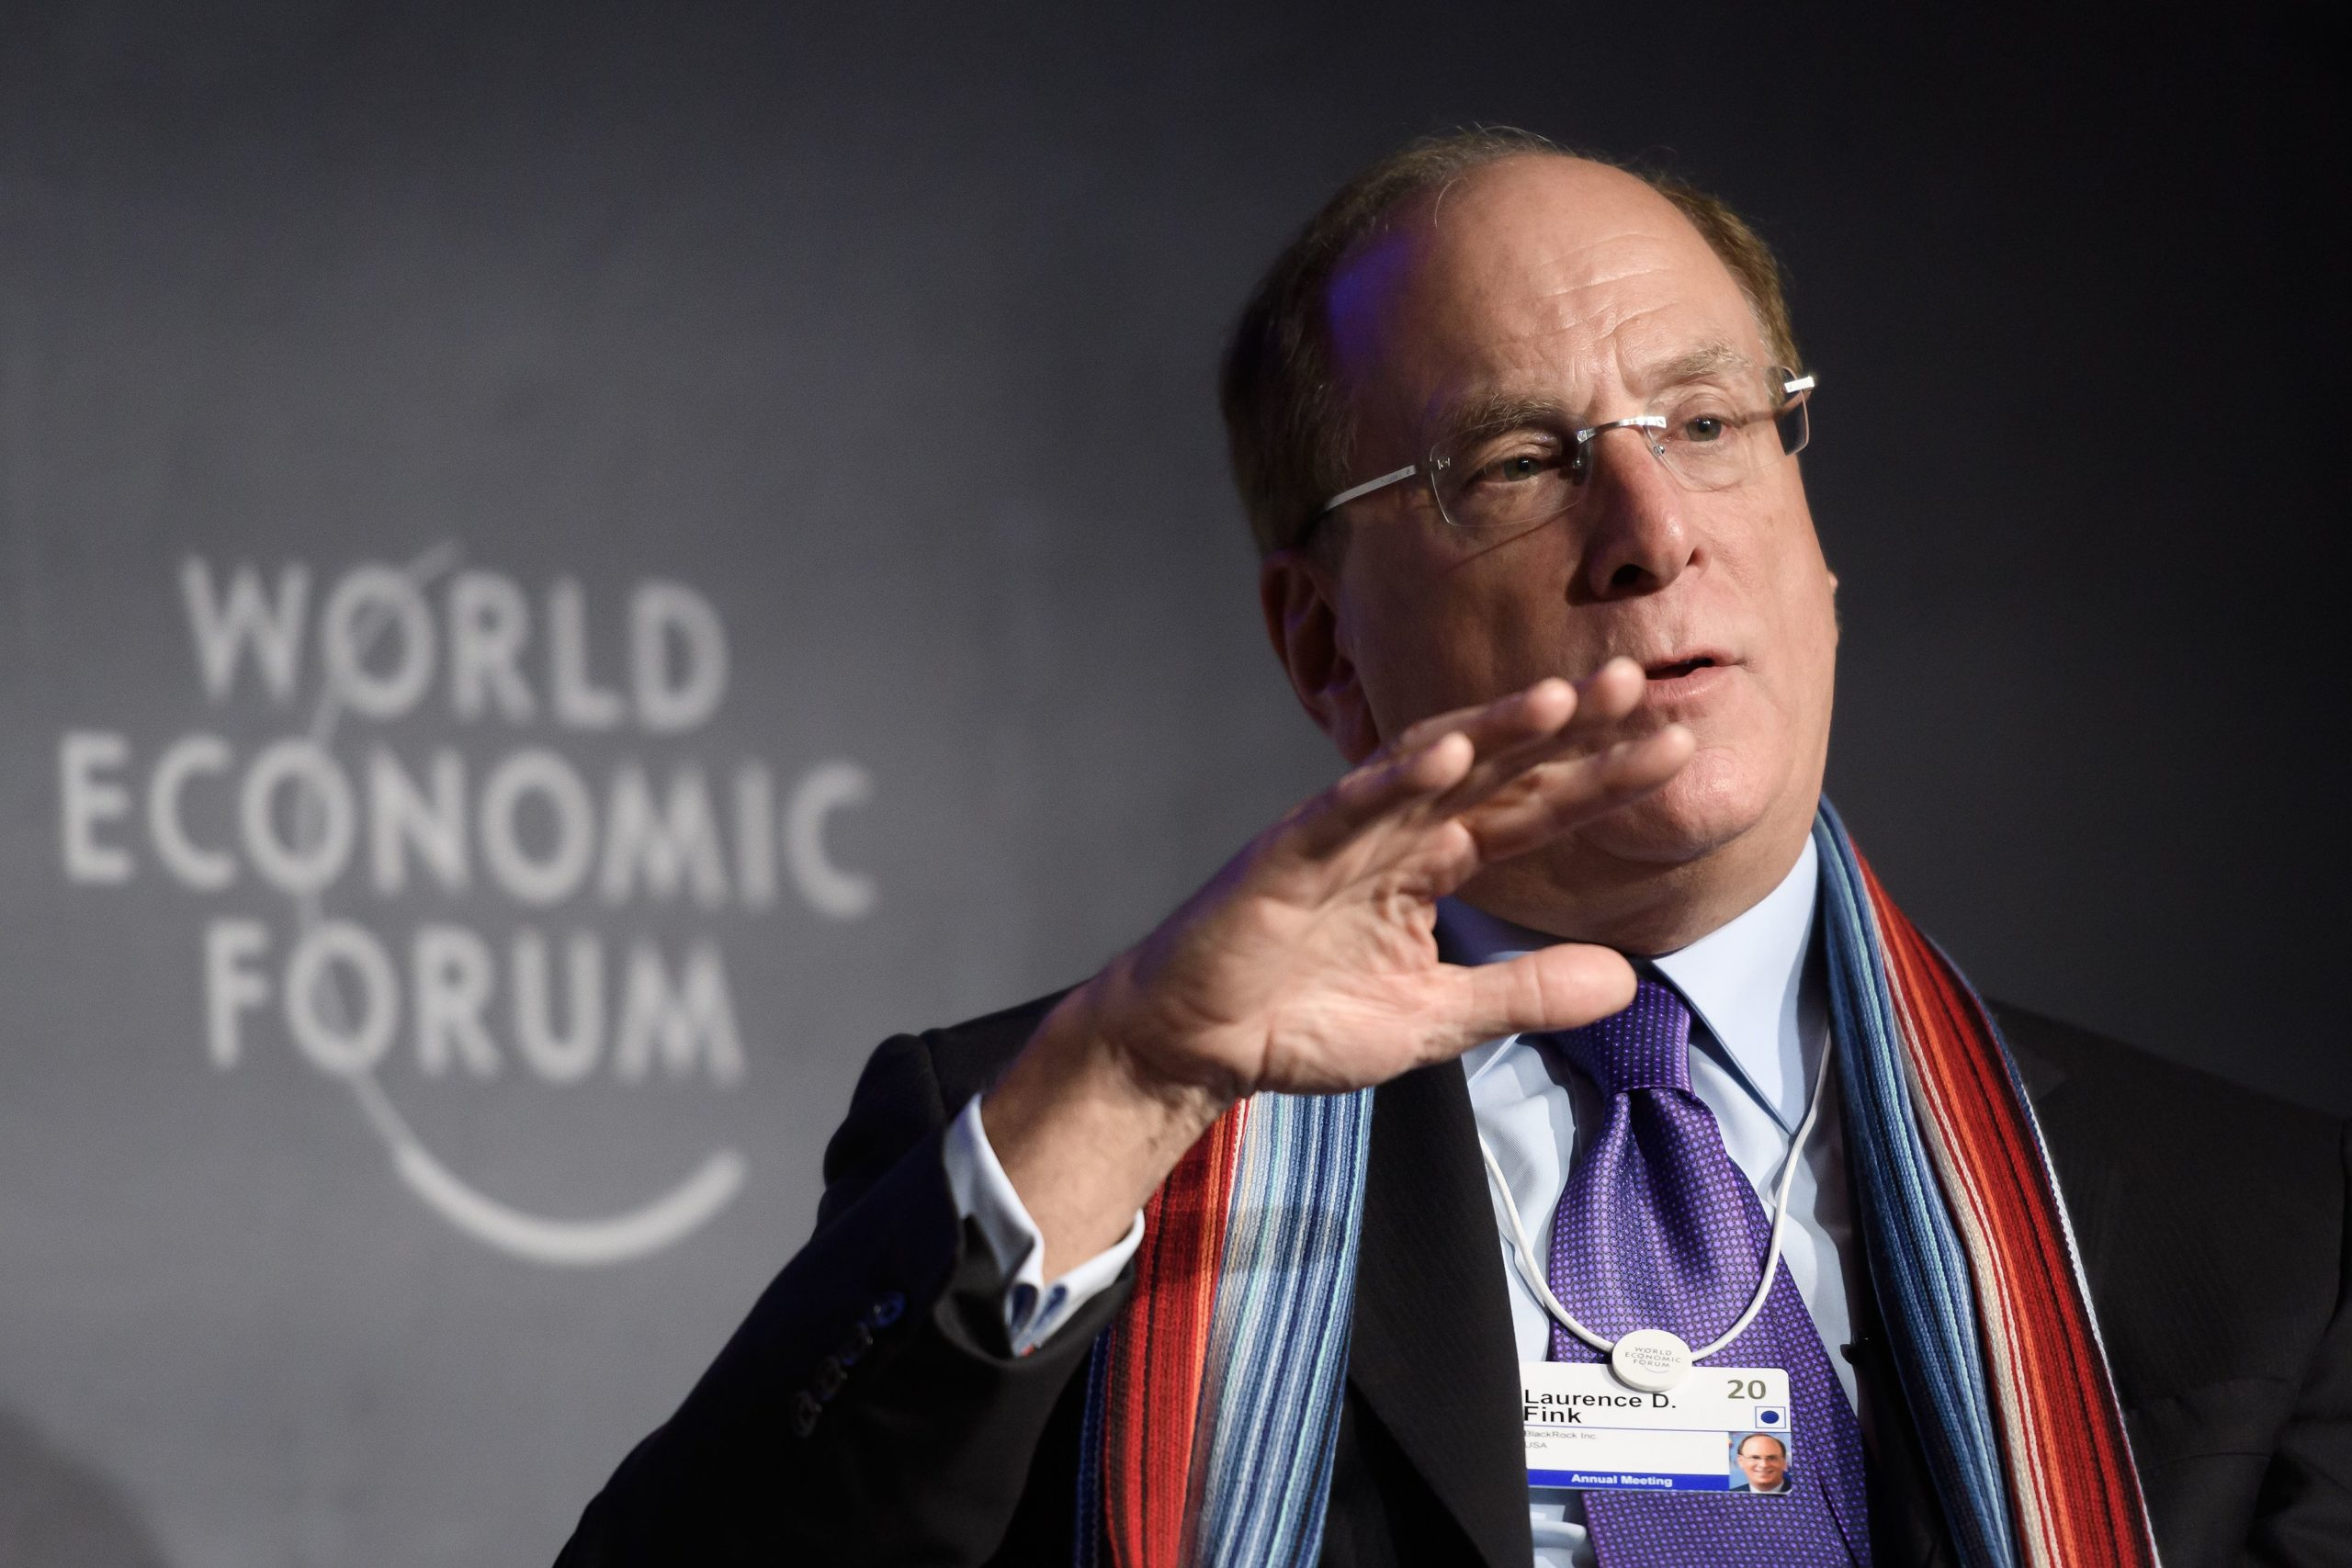 BlackRock CEO Laurence Fink attends a session at the World Economic Forum on Jan. 23, 2020. (Fabrice Coffrini/AFP via Getty Images)